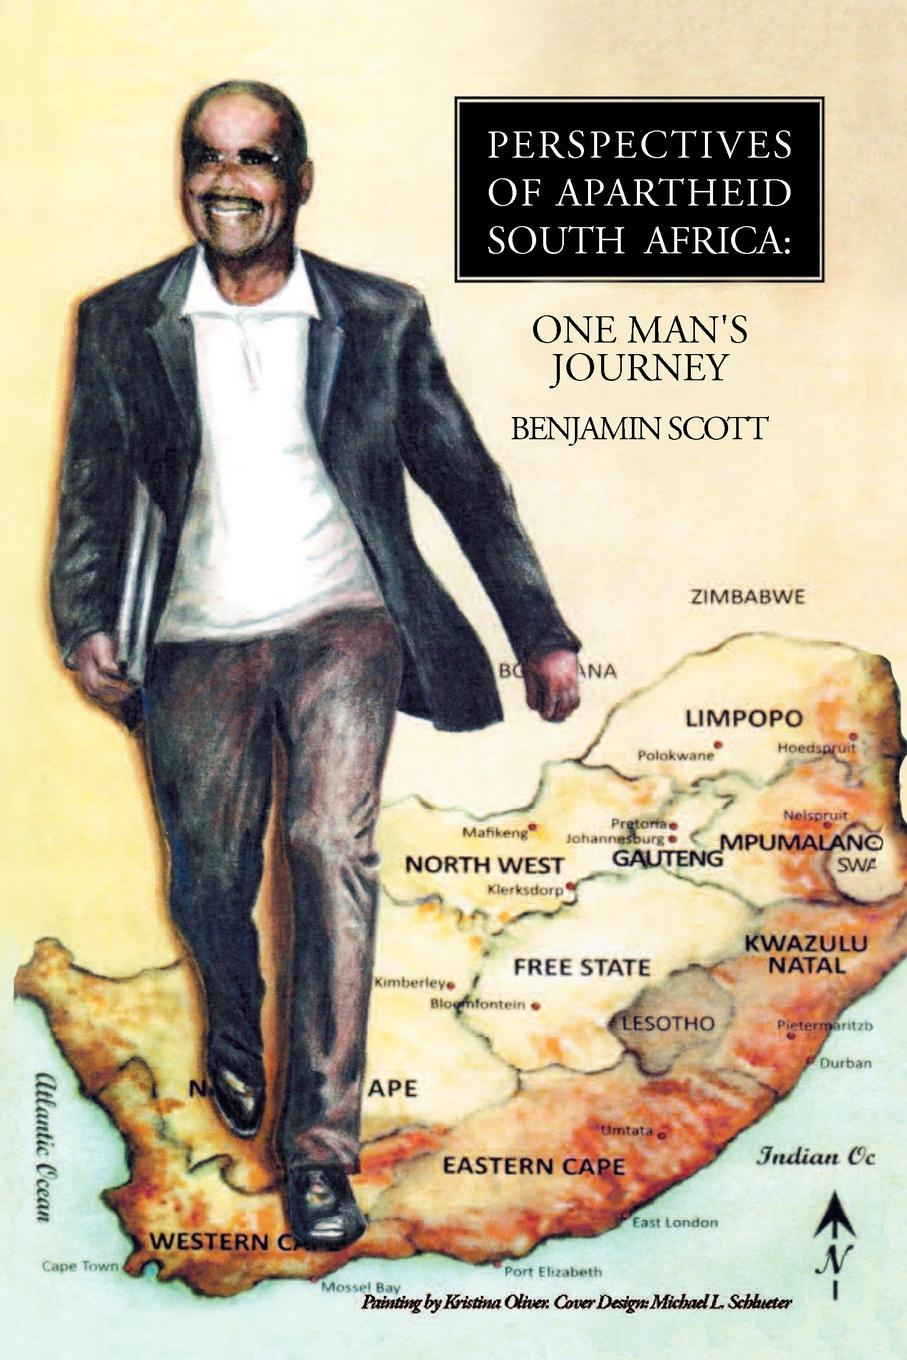 Benjamin Scott Perspectives of Apartheid South Africa south africa 07